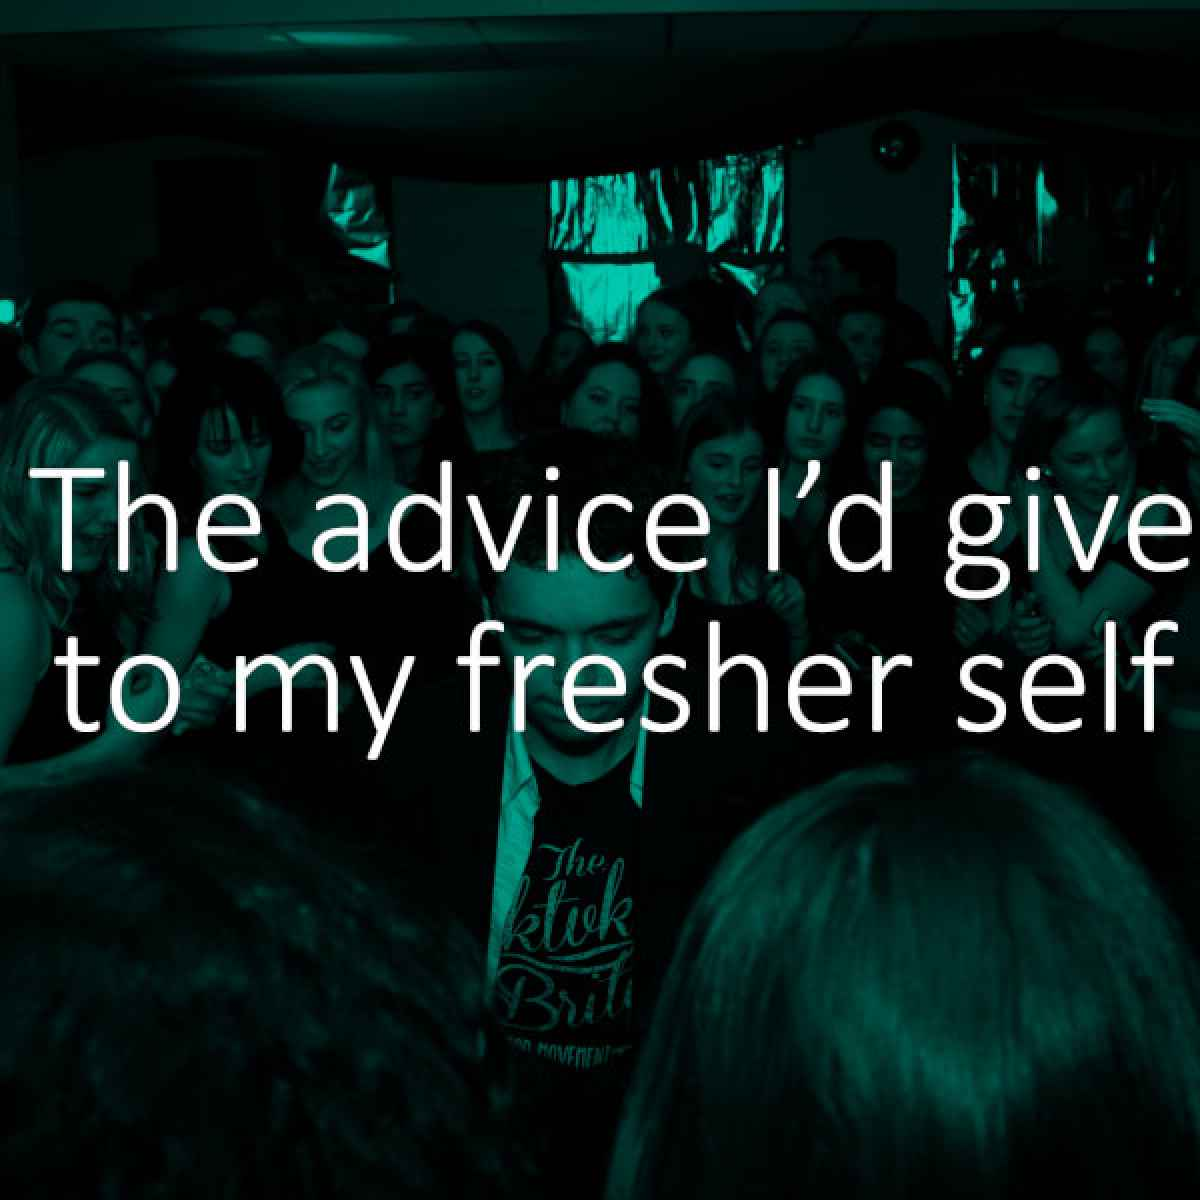 Advice for fresher self